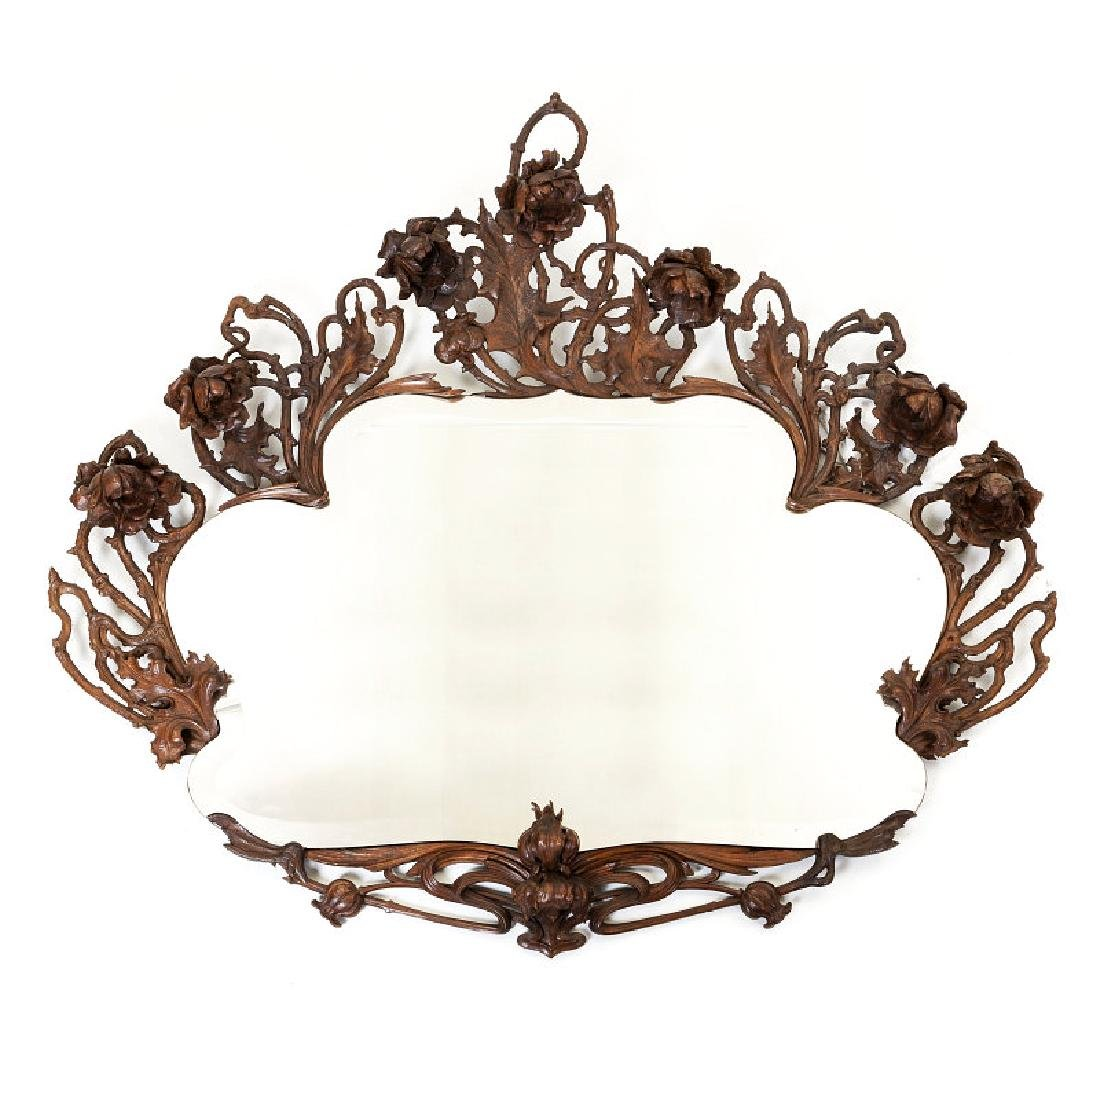 Large art nouveau mirror in carved wood